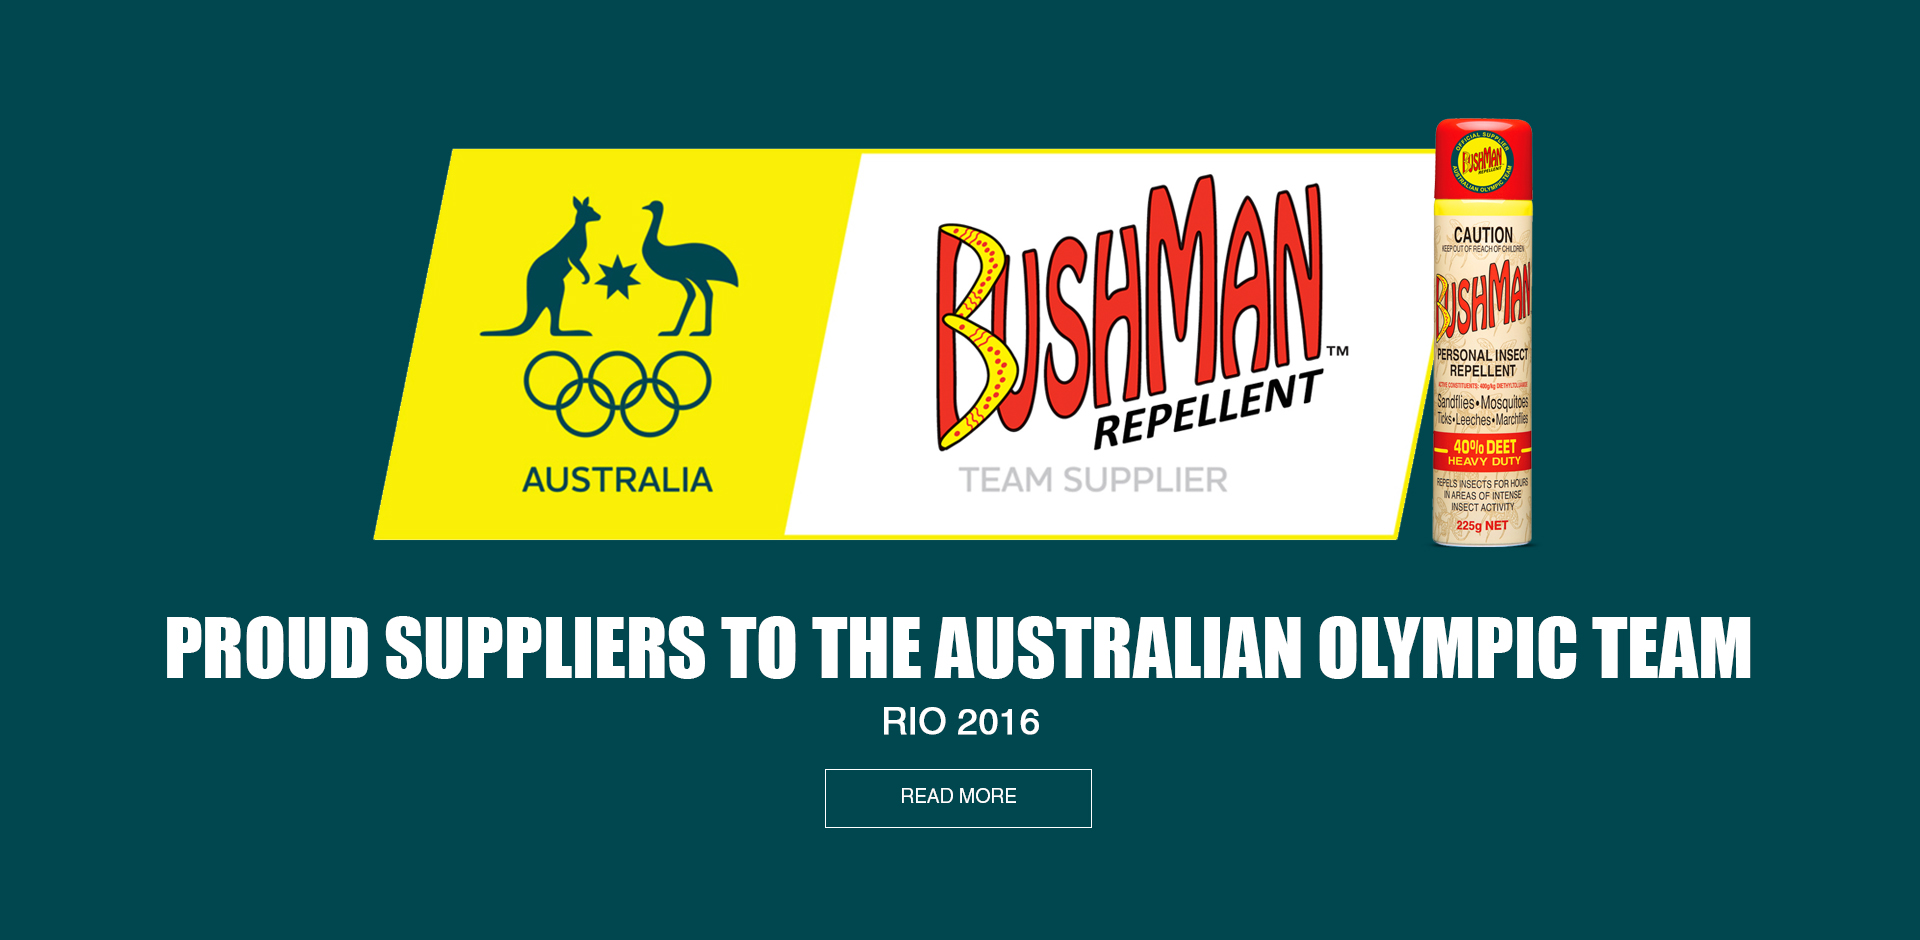 Bushman is Australian born, Australian owned, Australian made